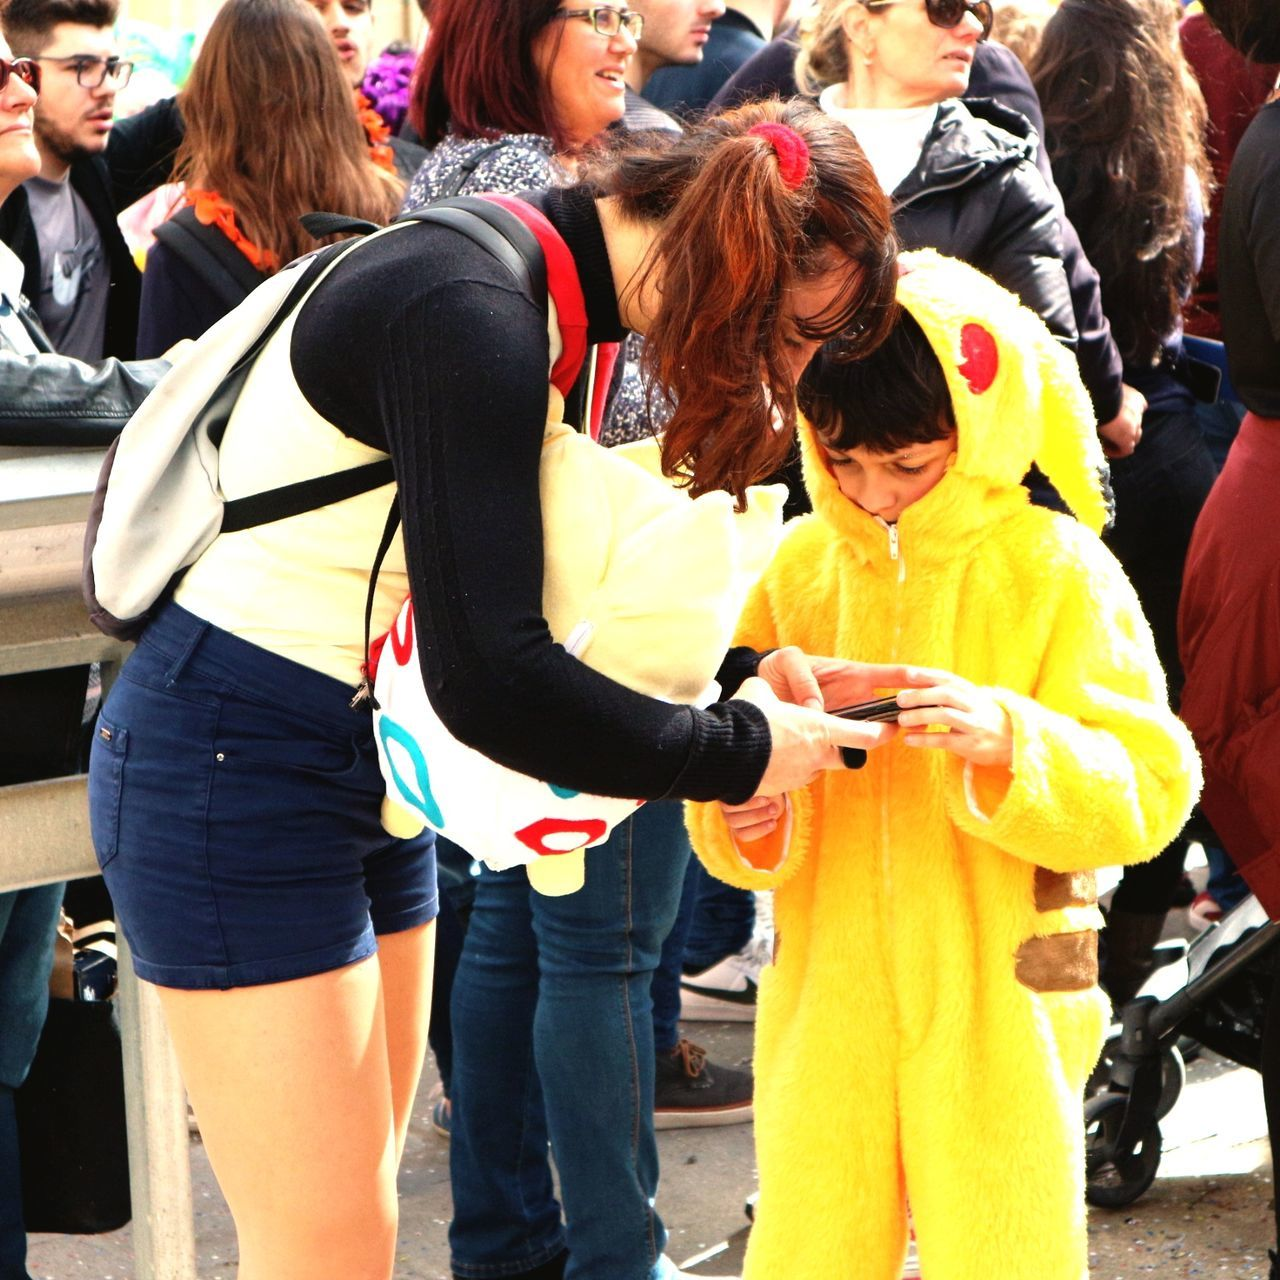 Carnival Crowds And Details Cultures Outdoors People Day Pokémon Pikachu Crowd Comic Canon M10